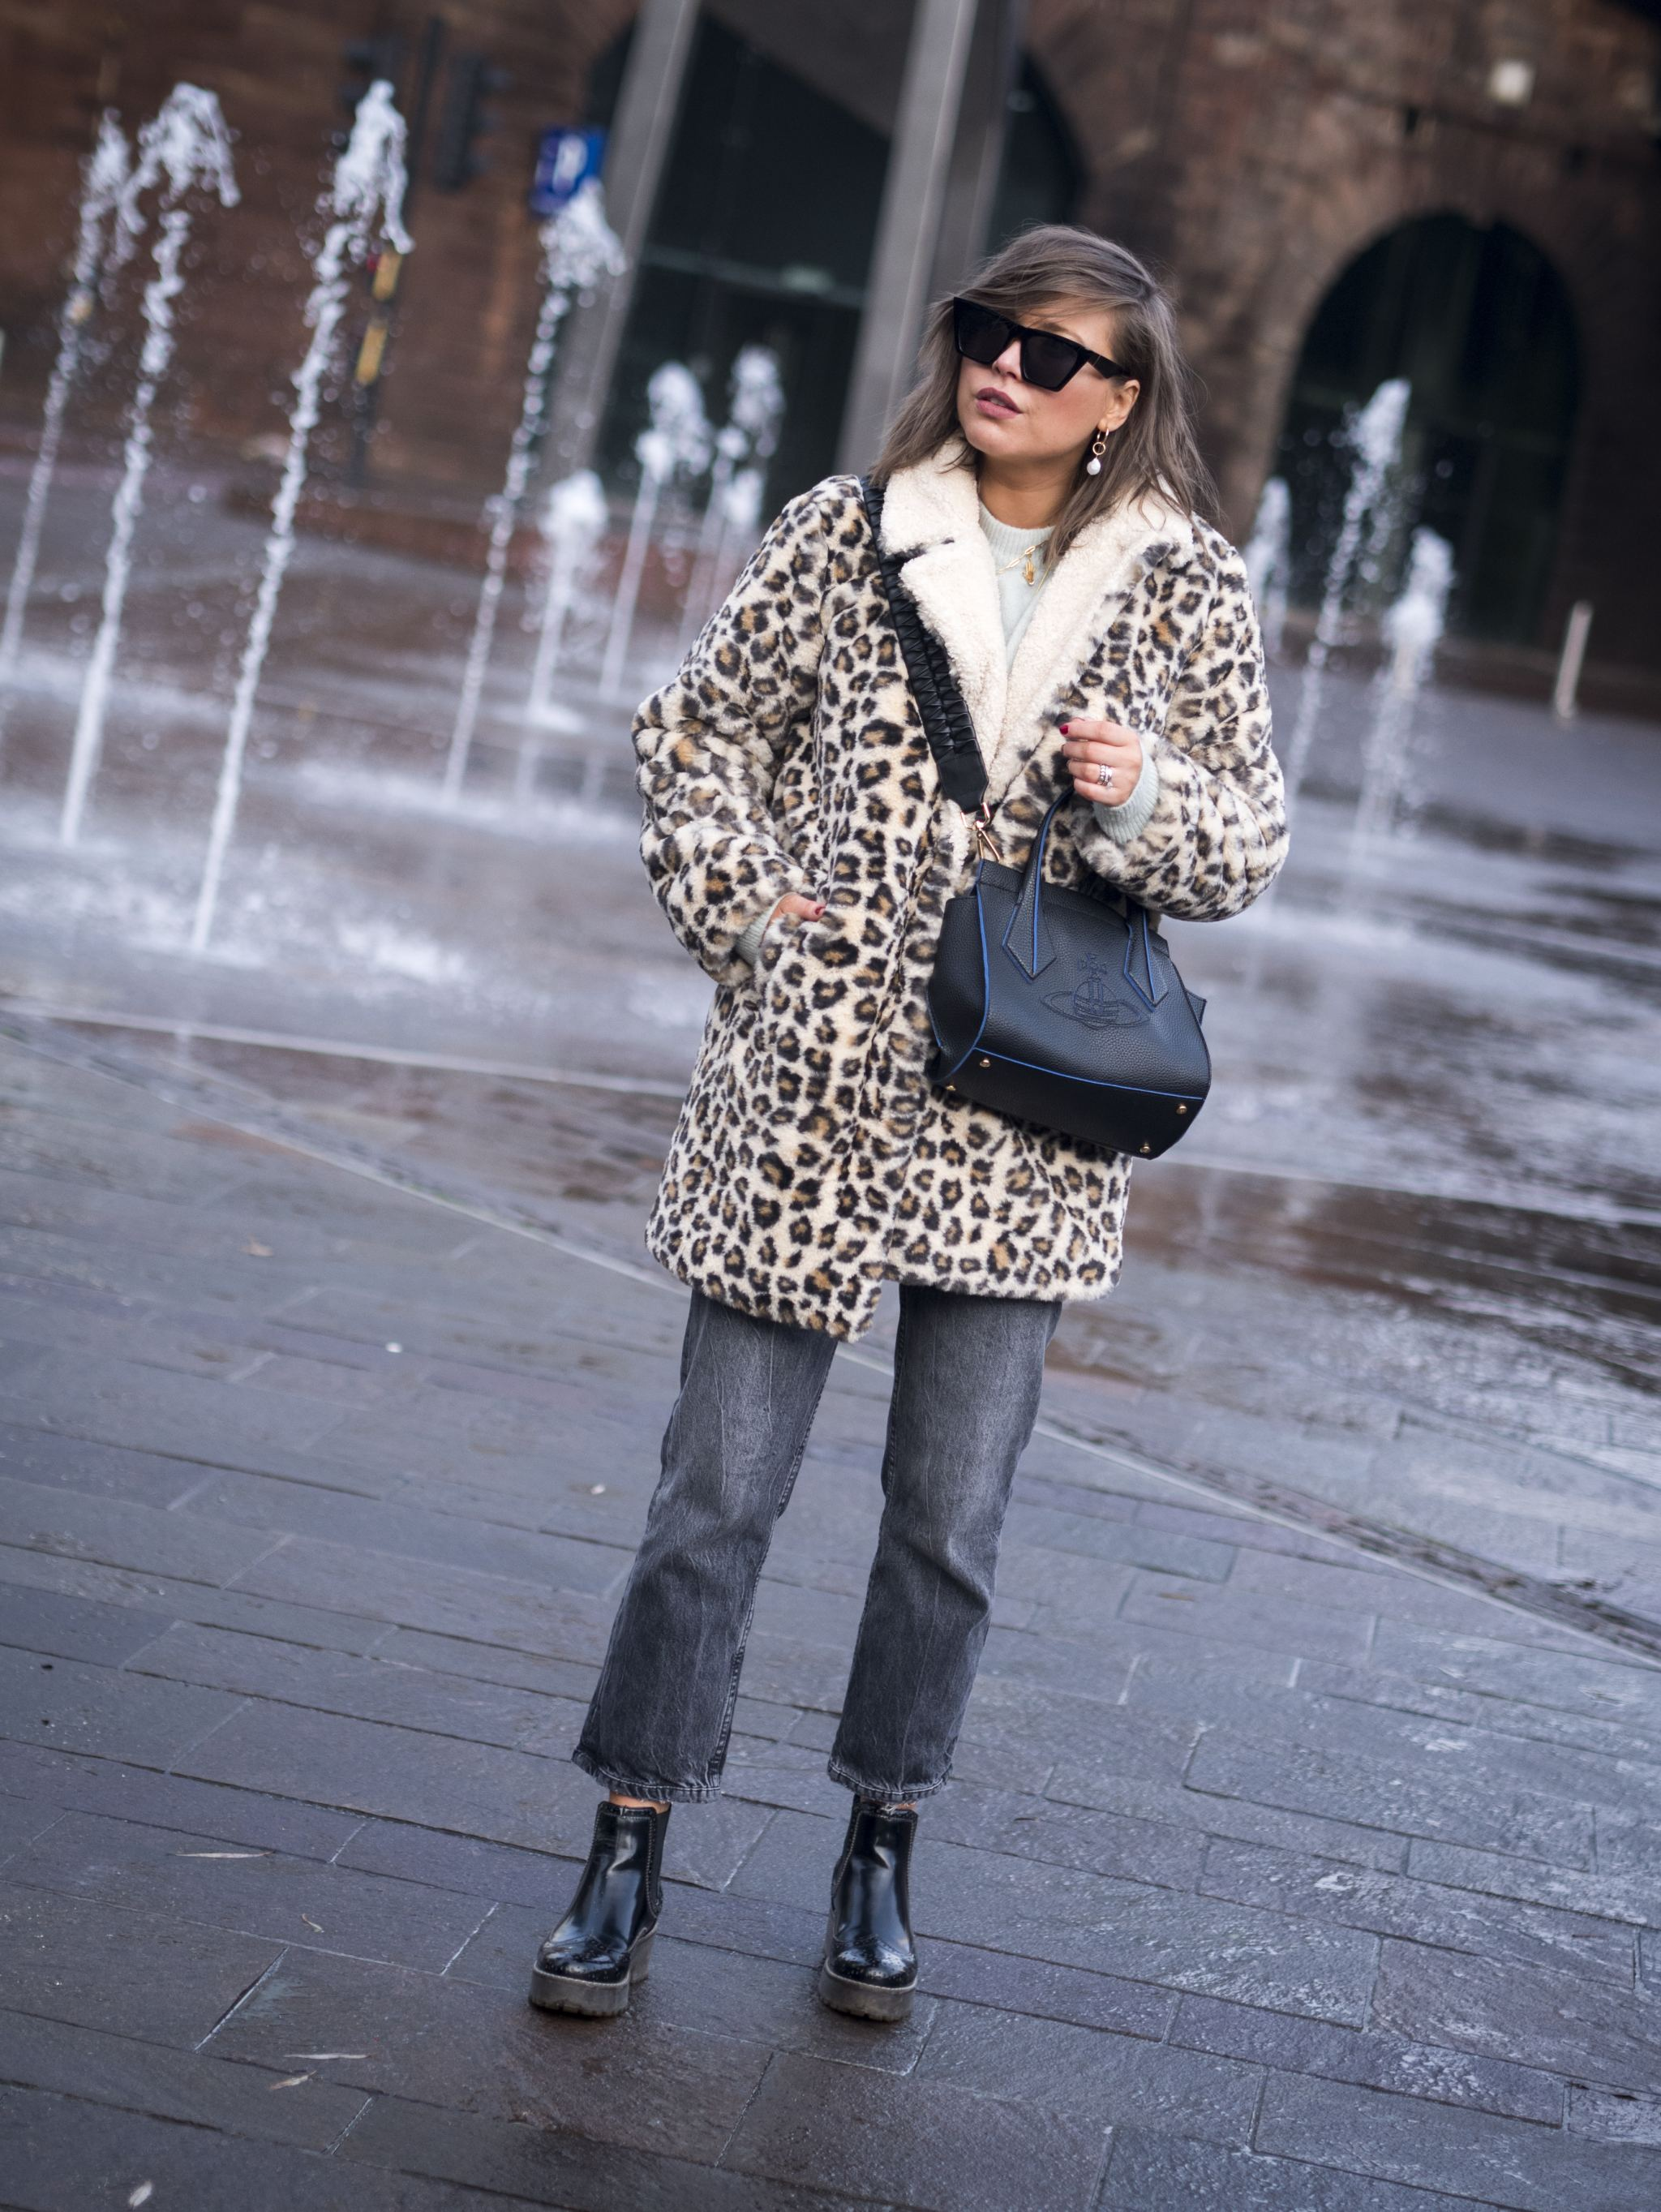 manchester fashion blogger, manchester blogger , manchester bloggers, Teddy  Coat, Styling coat , Louis Vuitton bag, Speedy 35 bag